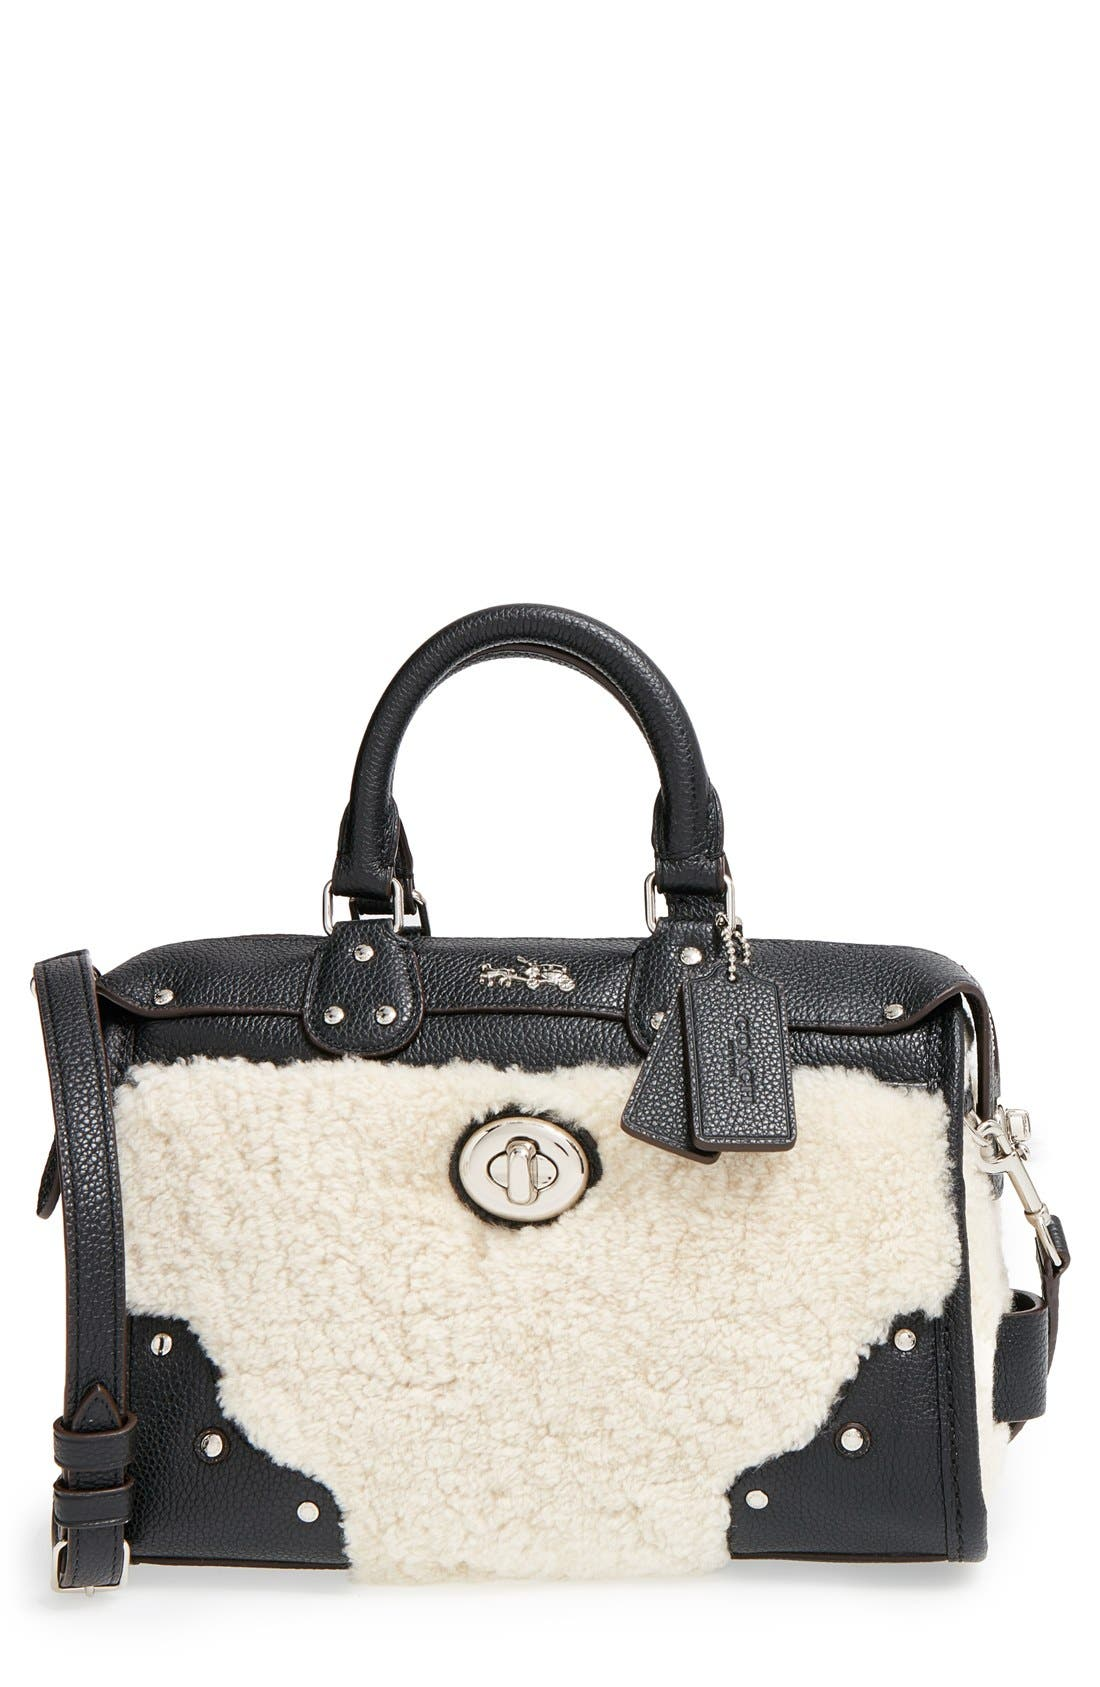 COACH,                             'Rhyder 24' Genuine Shearling & Leather Satchel,                             Main thumbnail 1, color,                             900